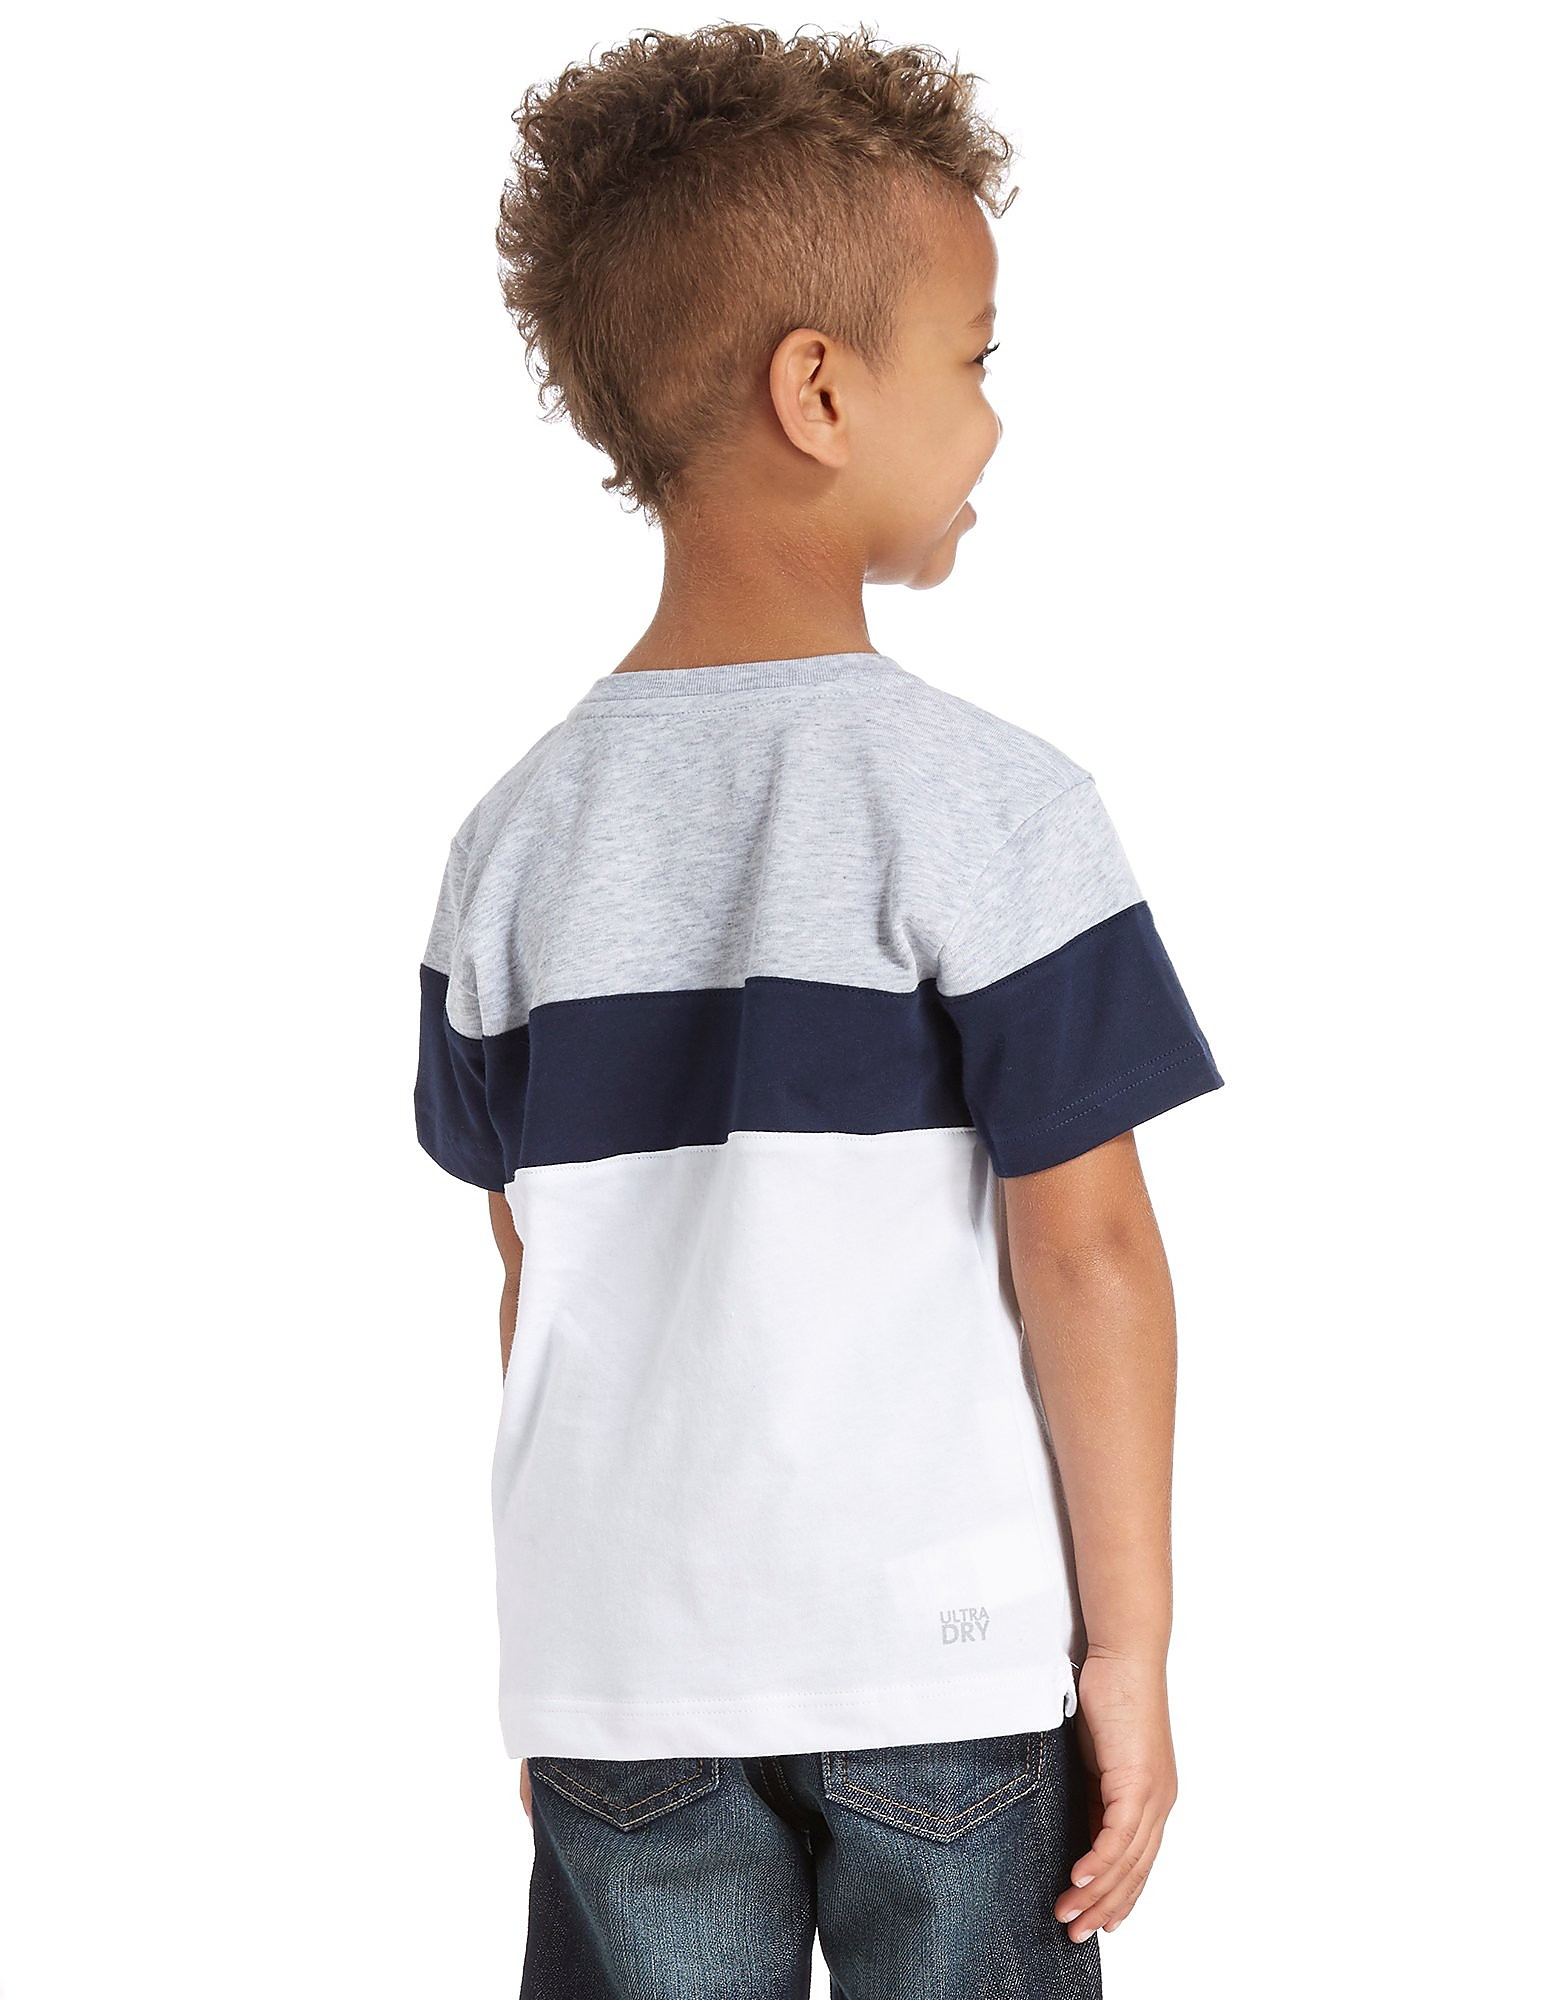 Lacoste Colour Block T-Shirt Children